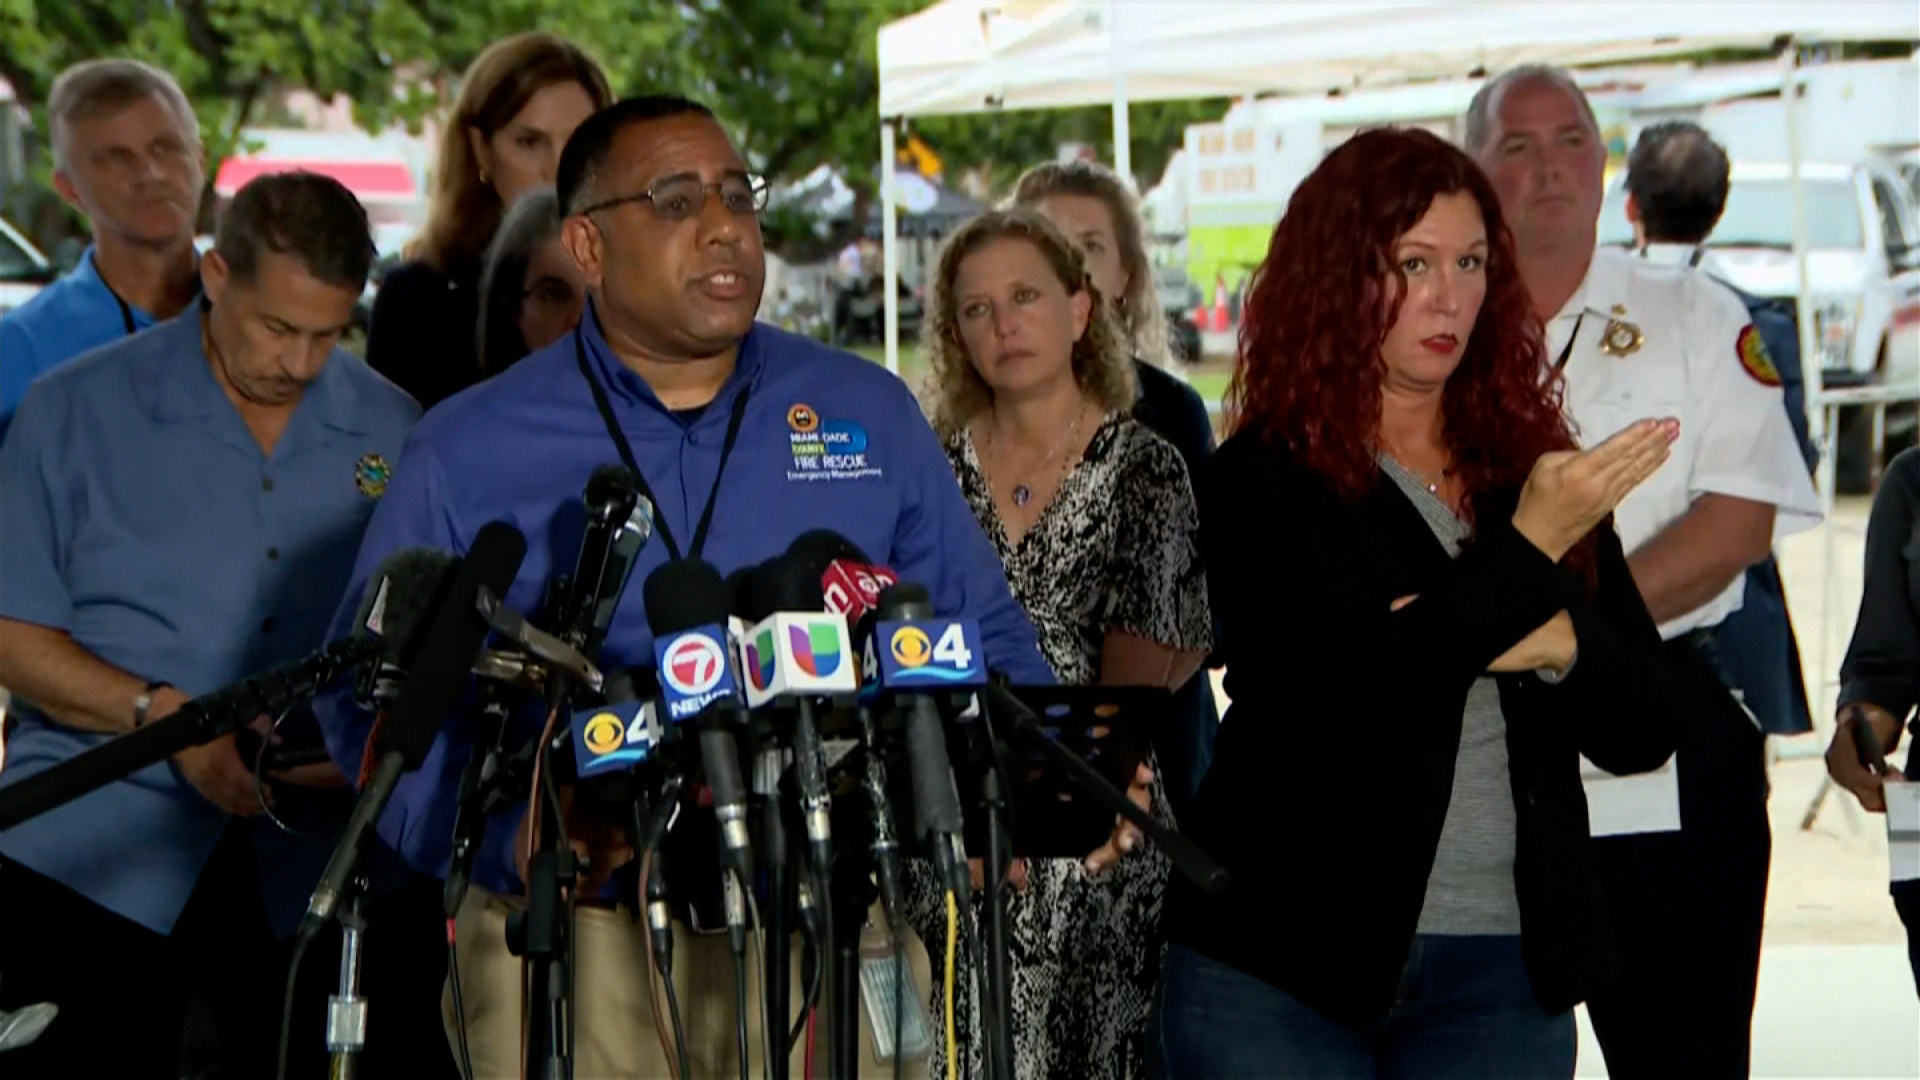 Charles Cirillo speaks at a news conference on Thursday, in Surfside, Florida.